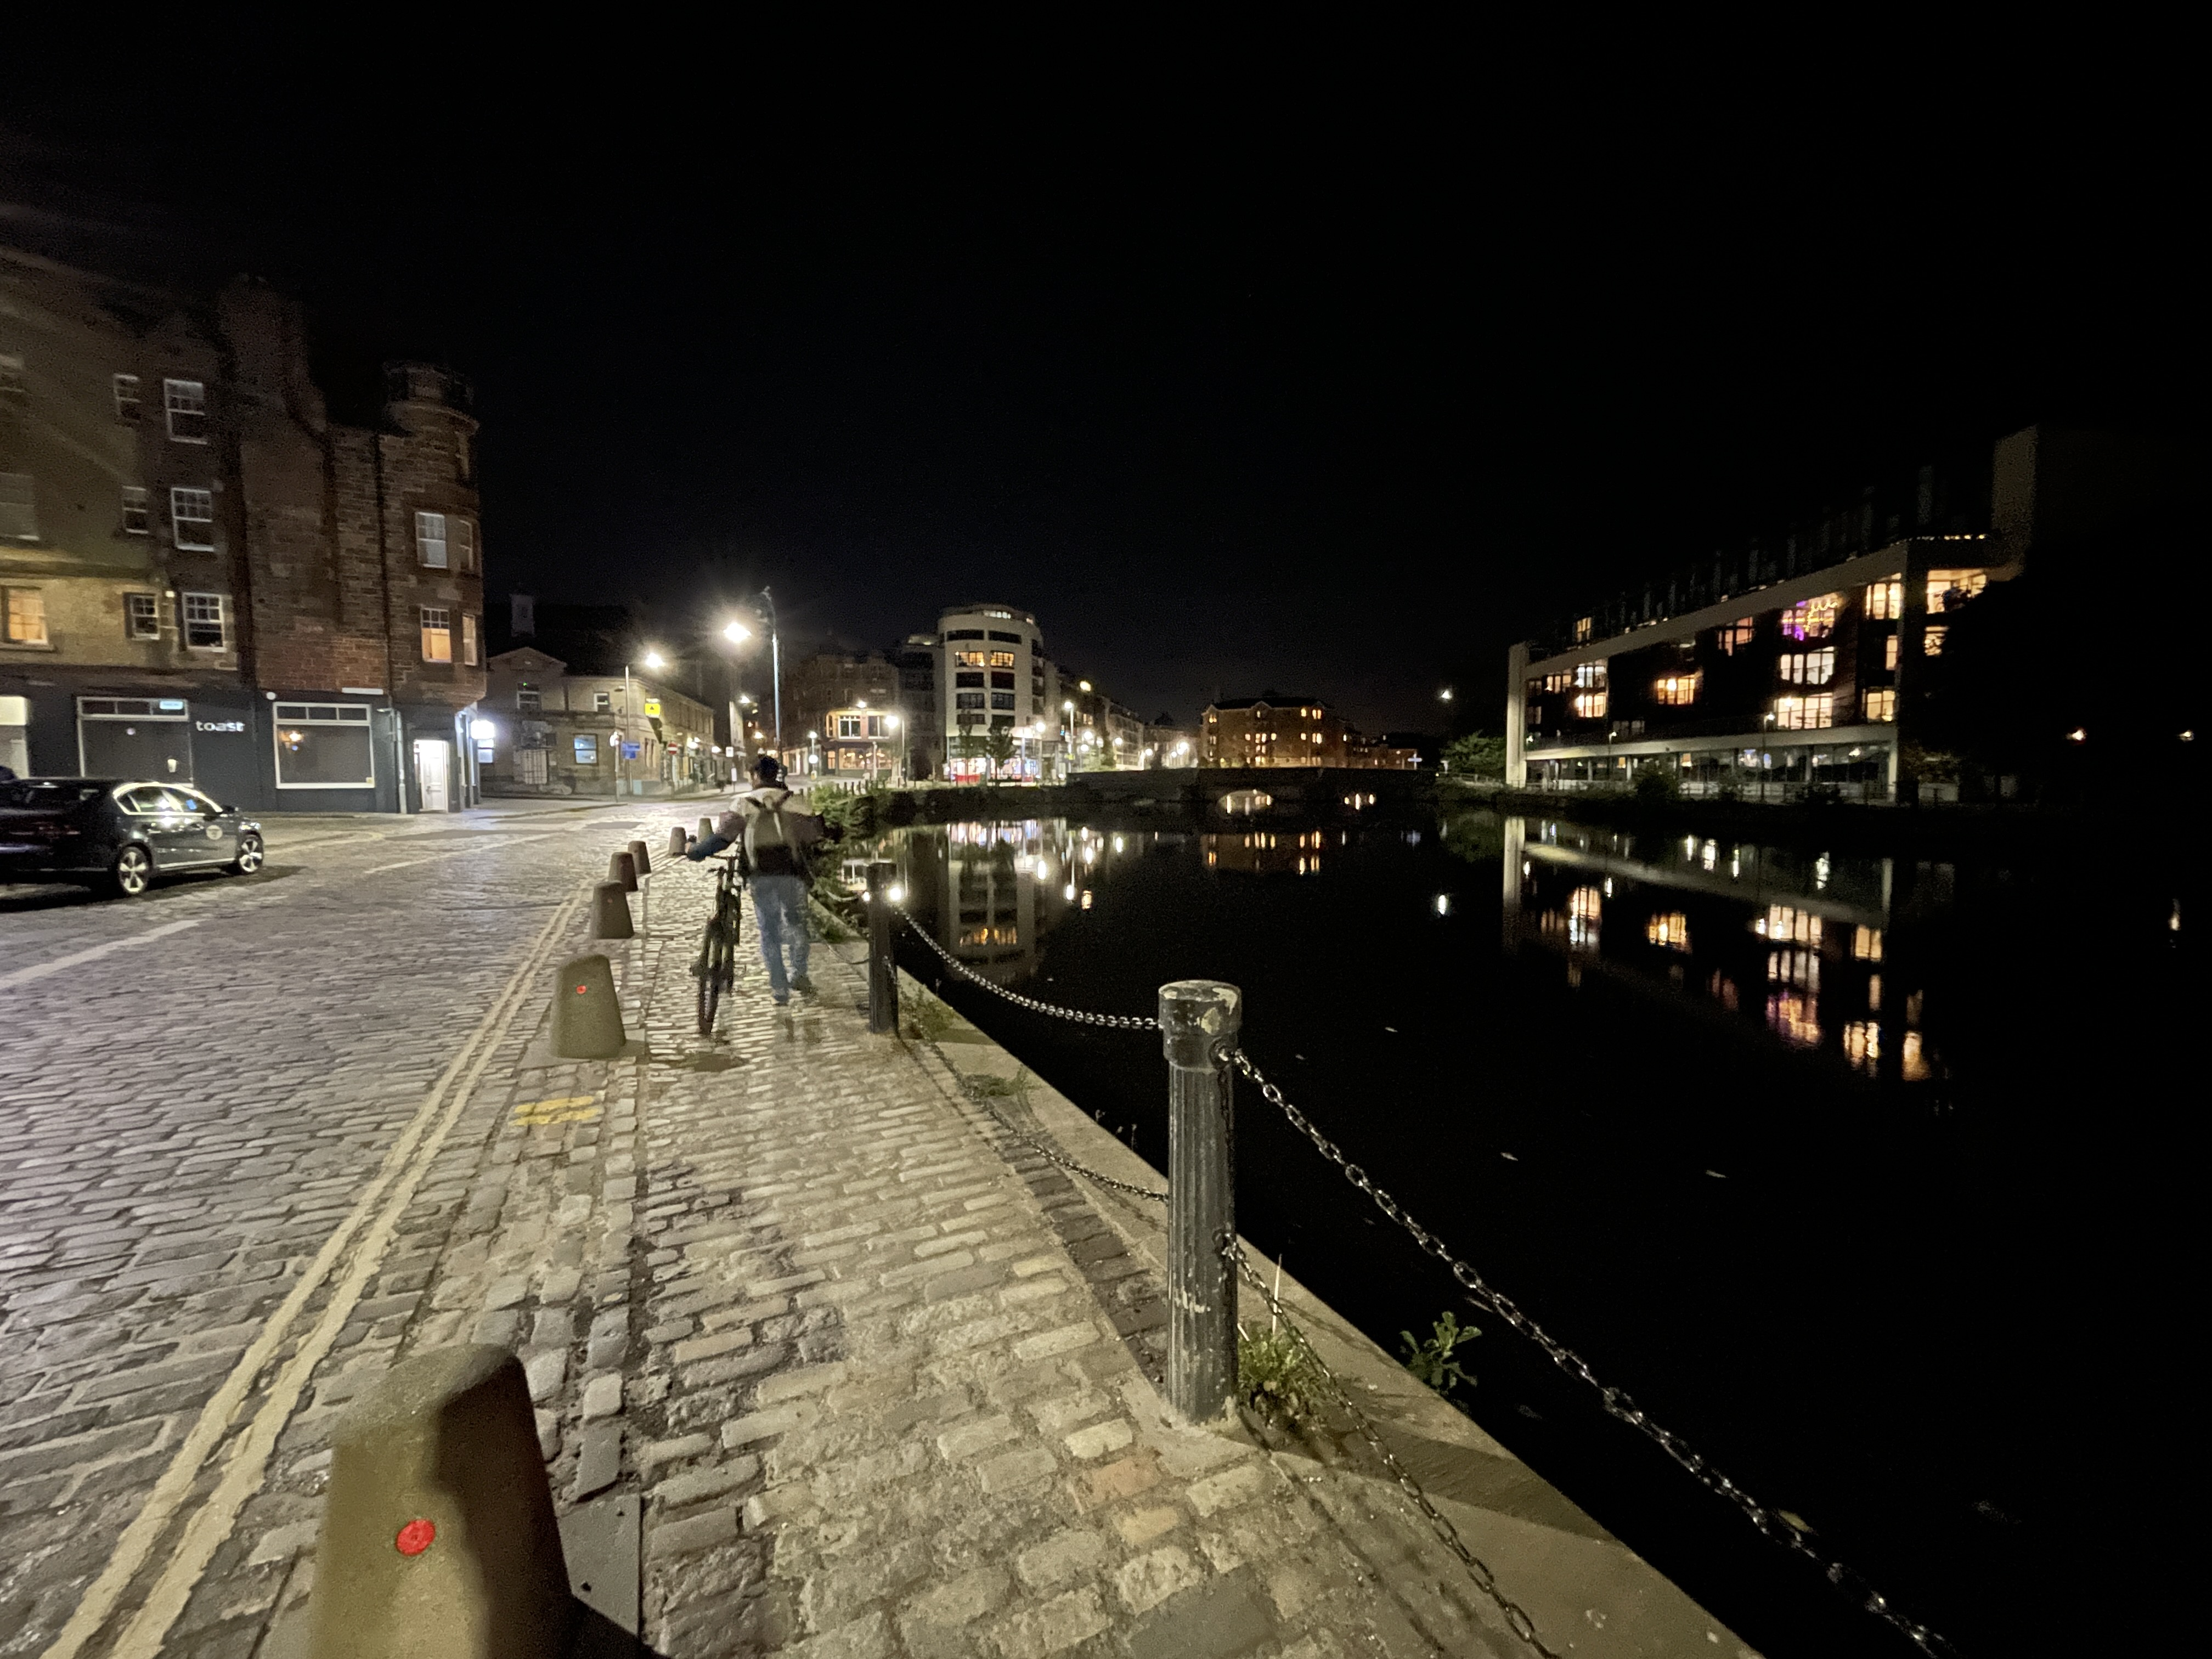 leith-wide-night-mode-iphone-12-pro-max